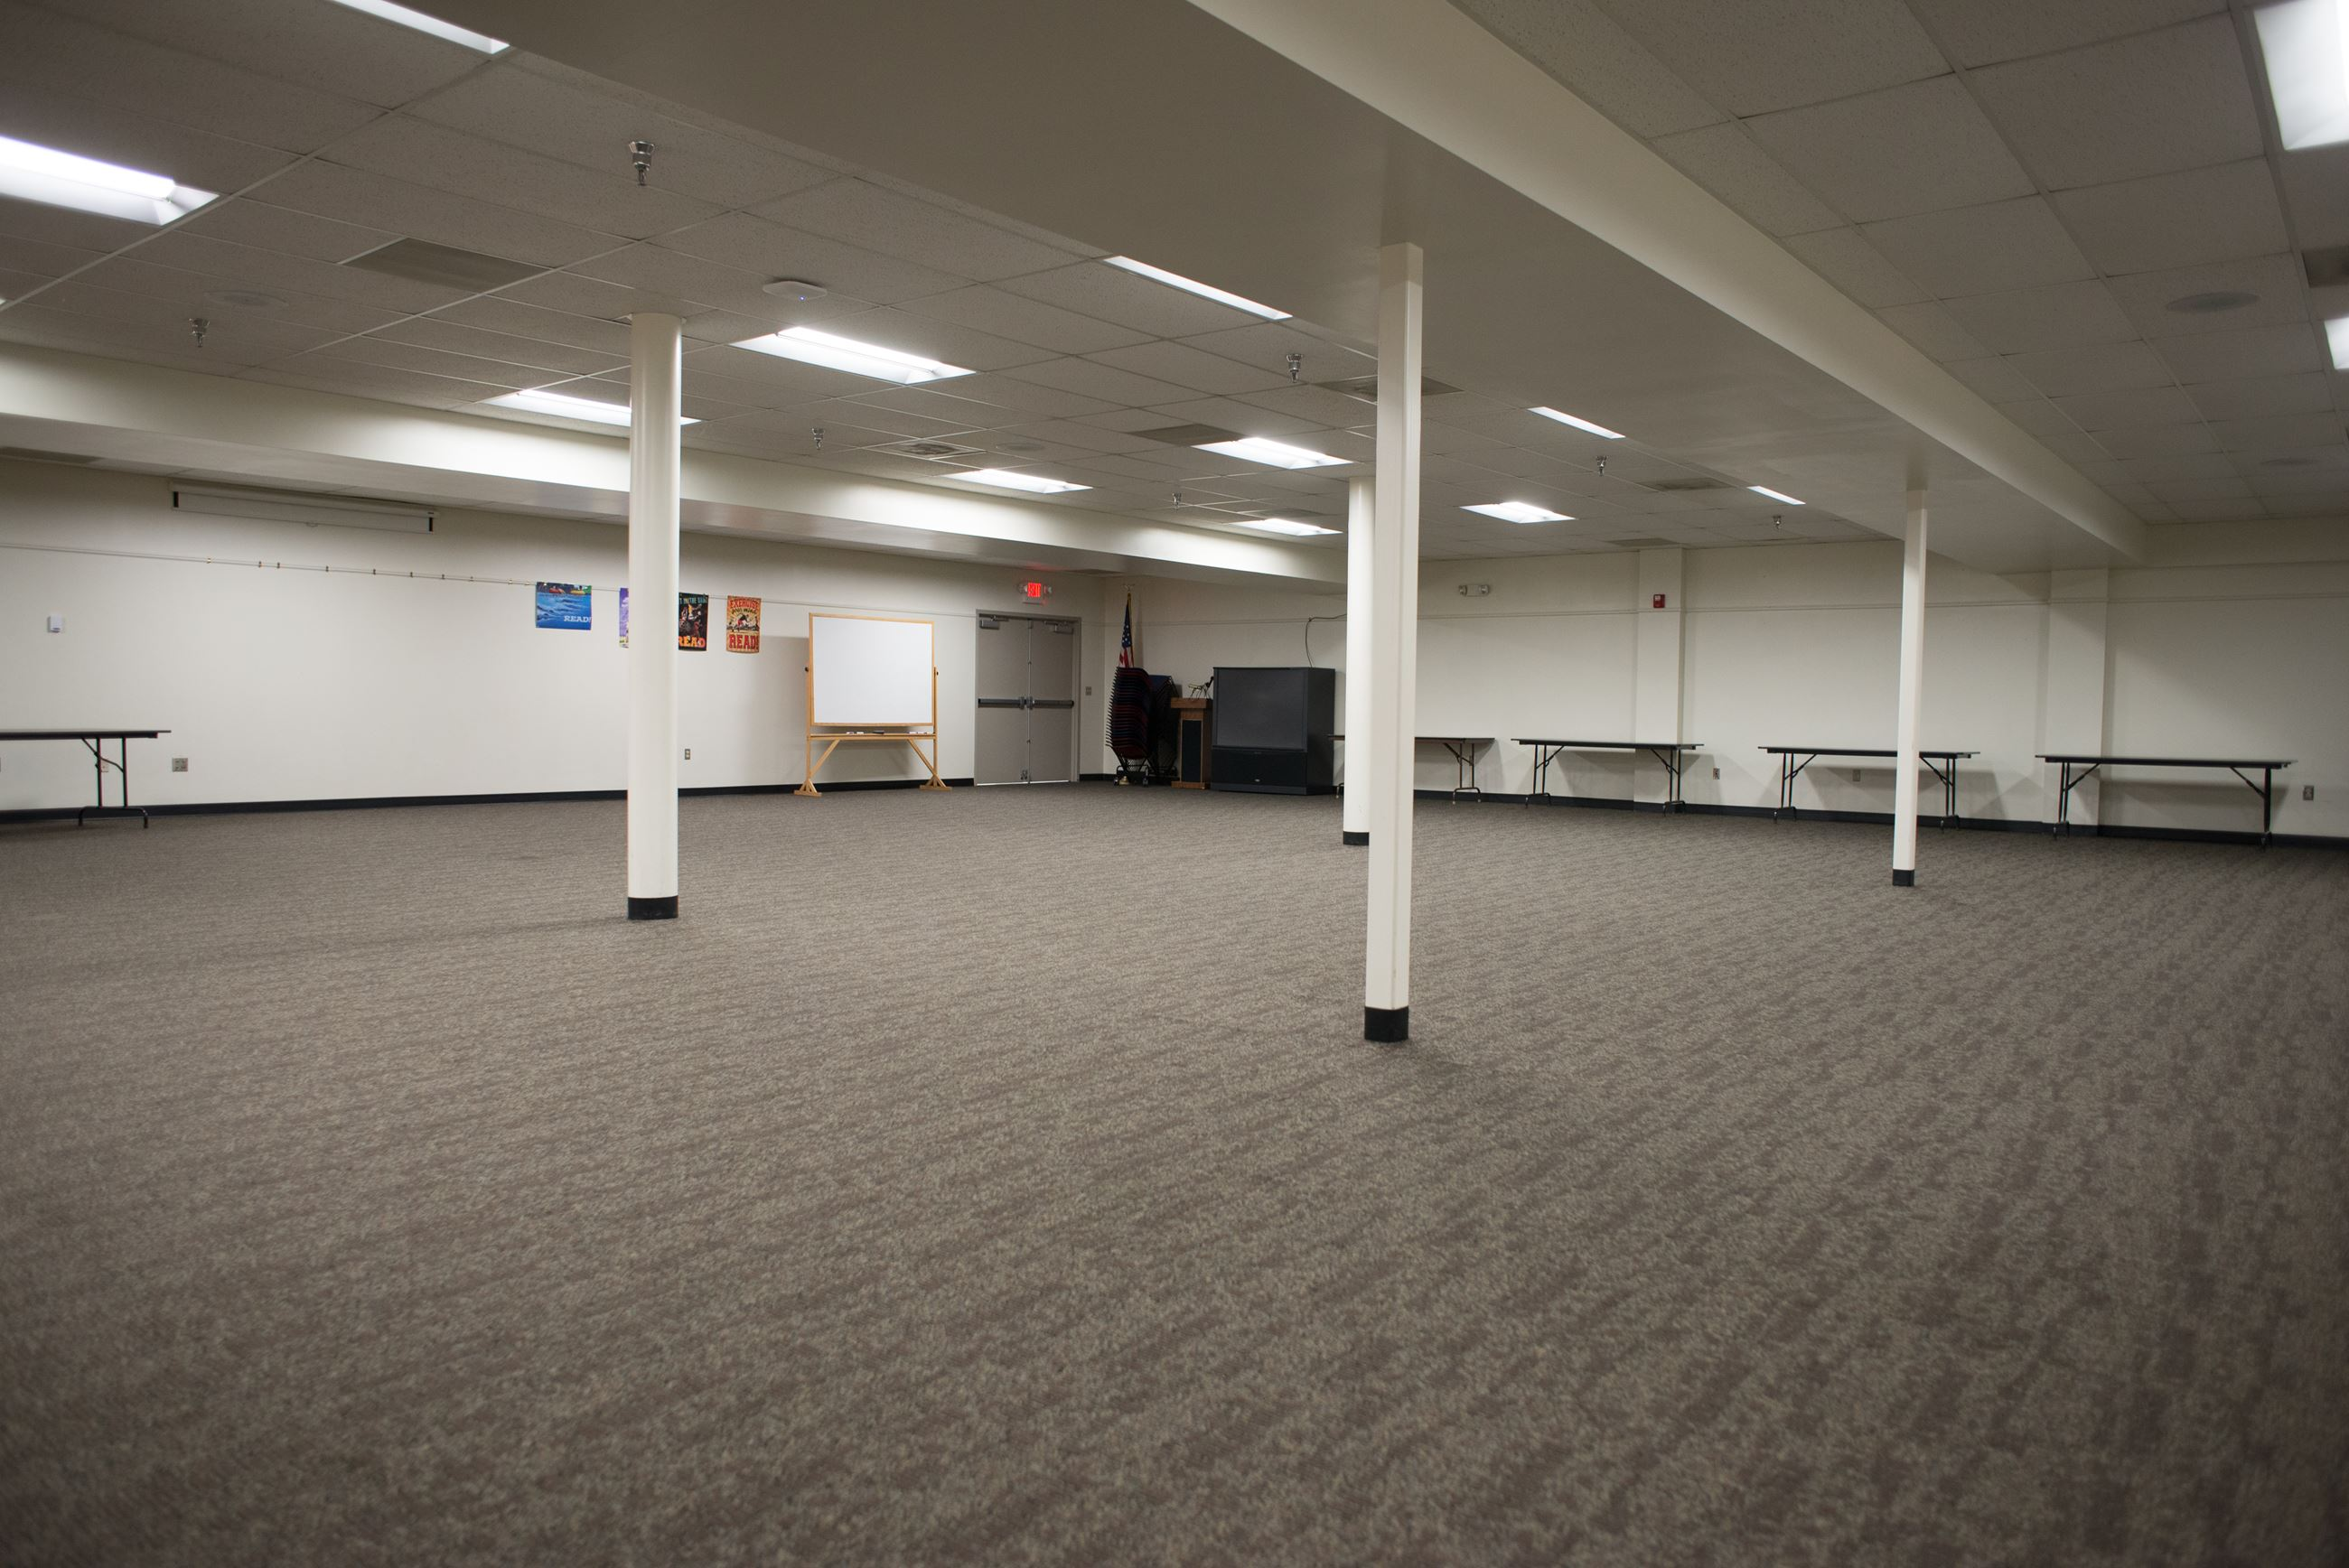 Image of Community Room